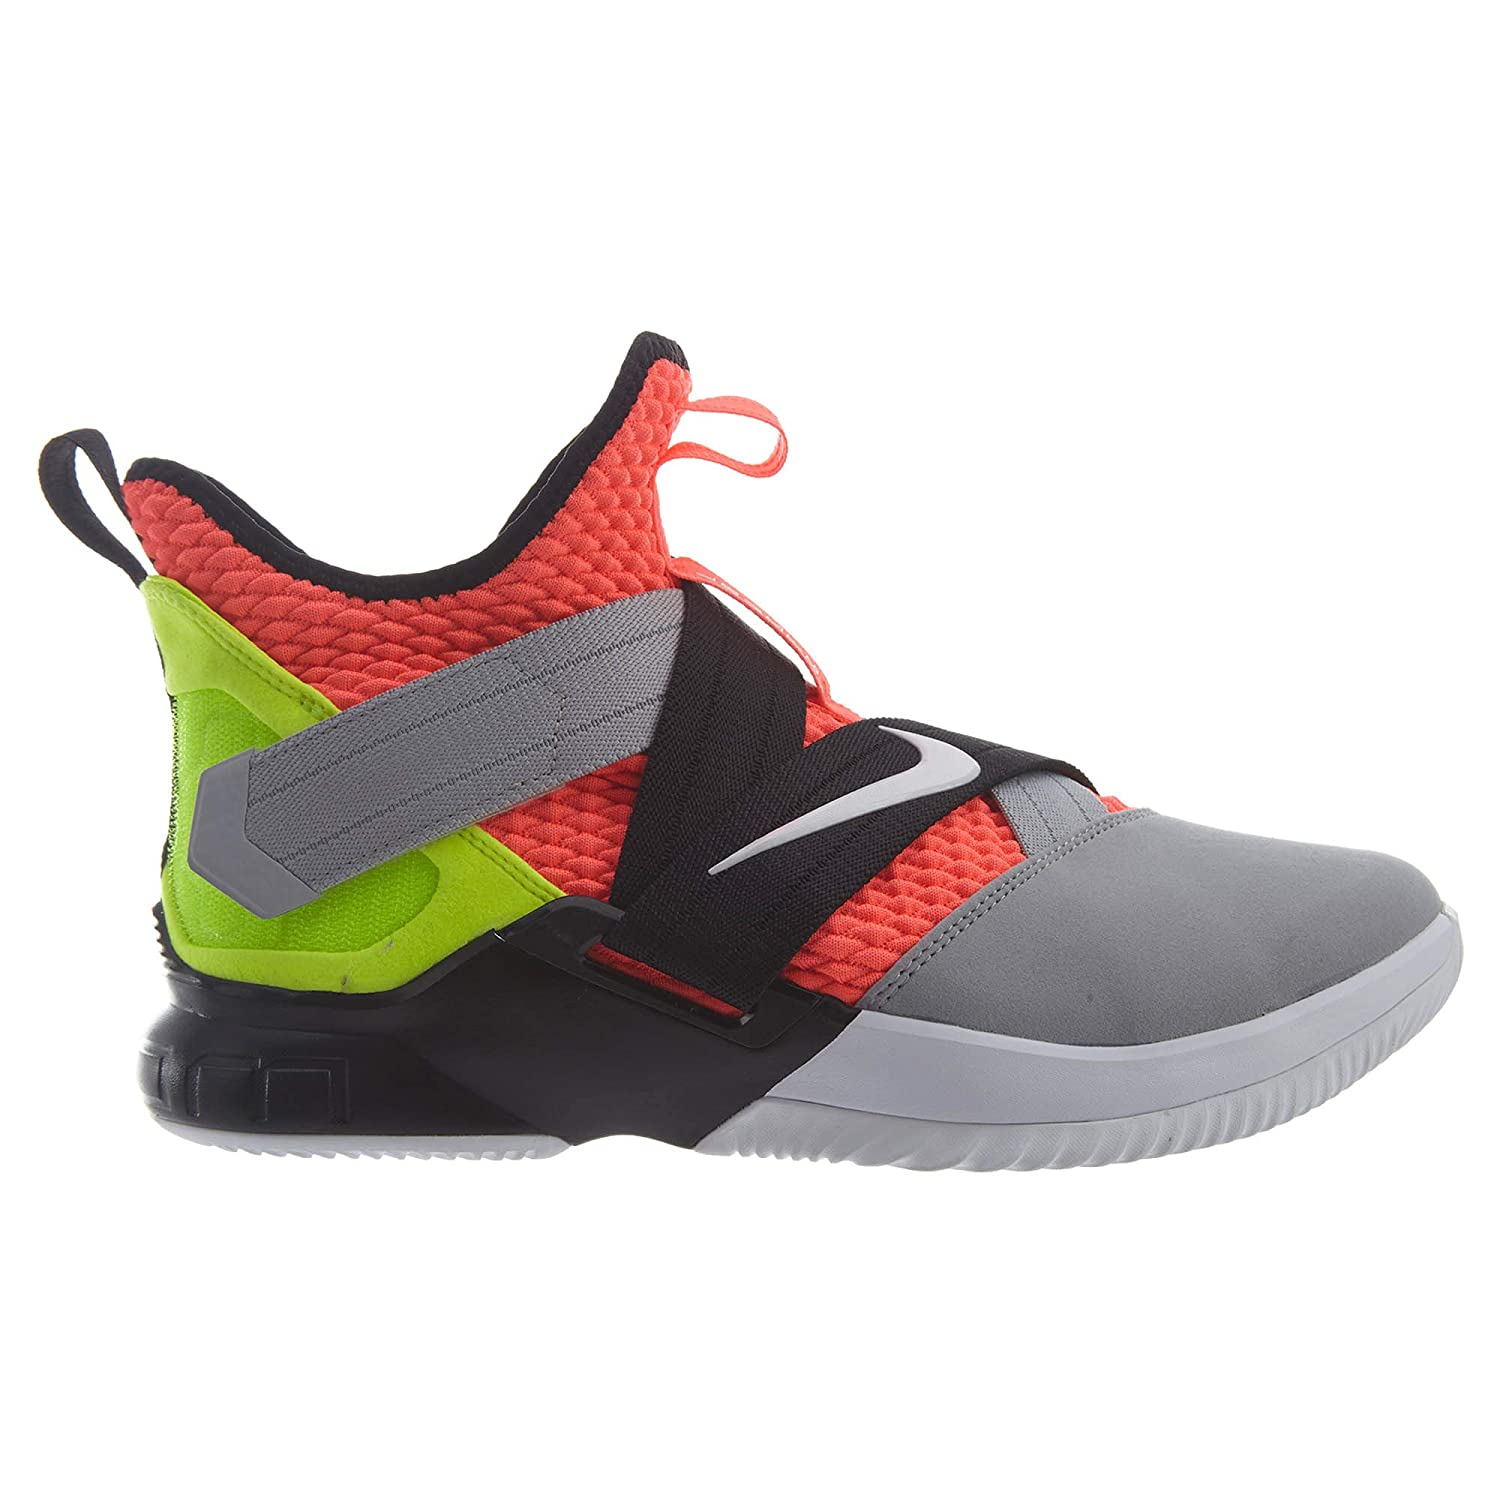 0706419a3ad Nike Men s Lebron Soldier 10 Basketball Shoes  Nike  Amazon.ca  Shoes    Handbags